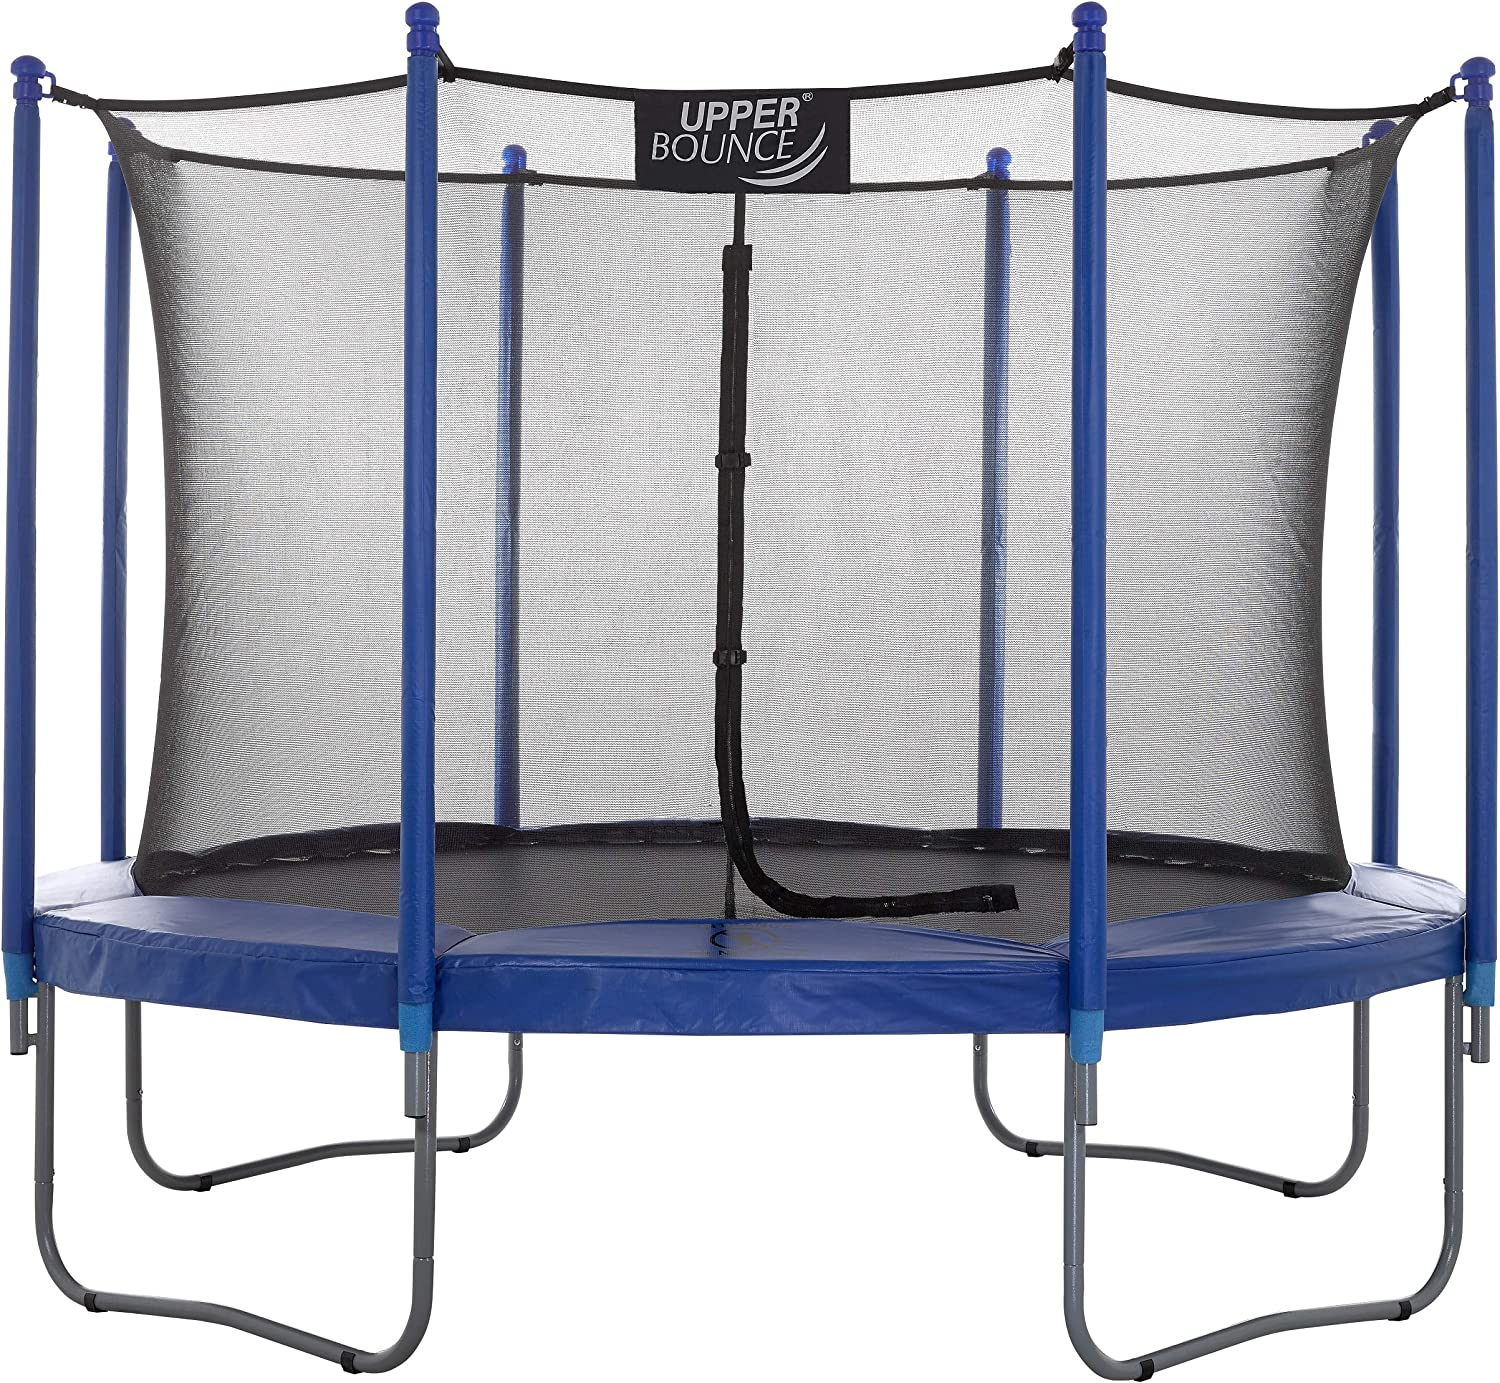 PayLessHere 10 FT Trampoline Combo Bounce Jump Safety Enclosure Net W//Spring